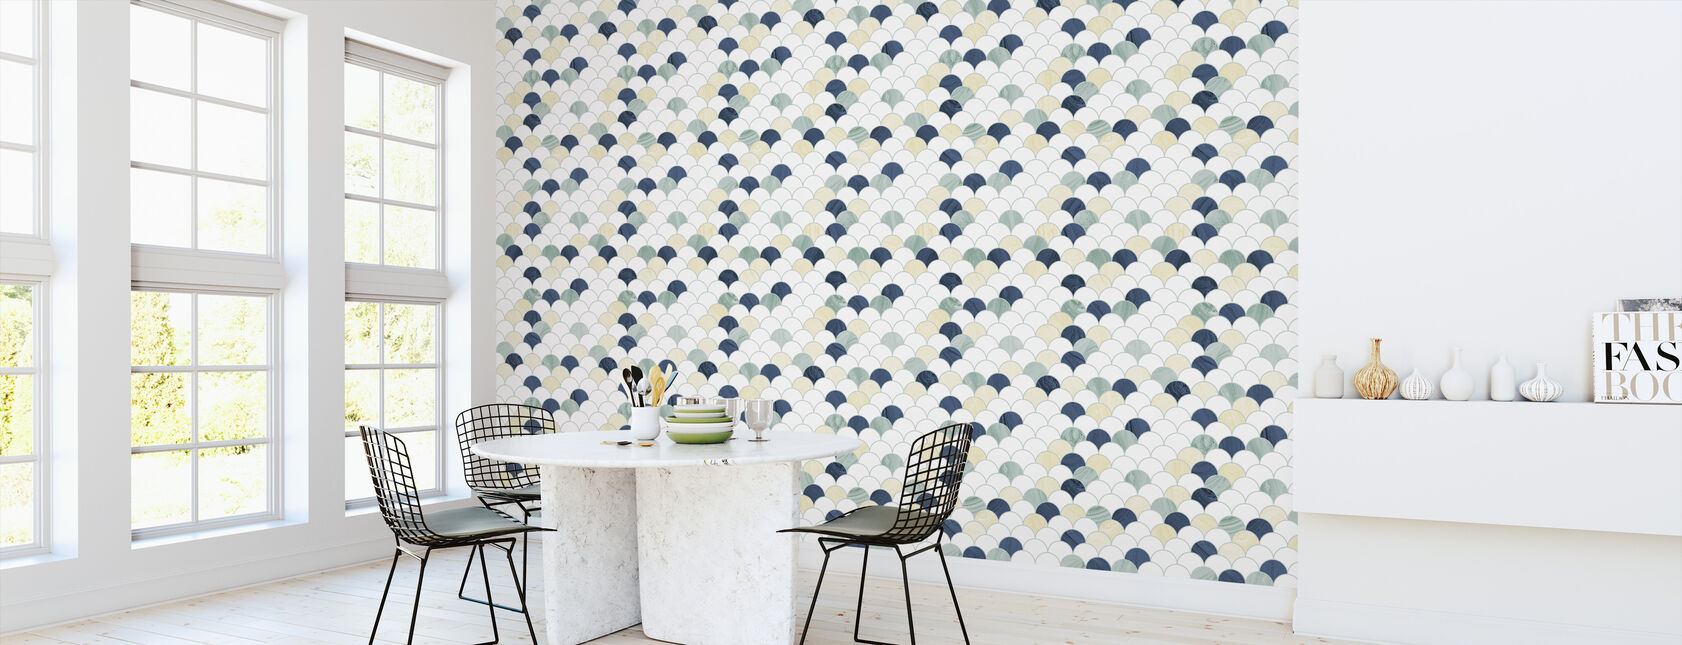 Feathers Blue - Wallpaper - Kitchen